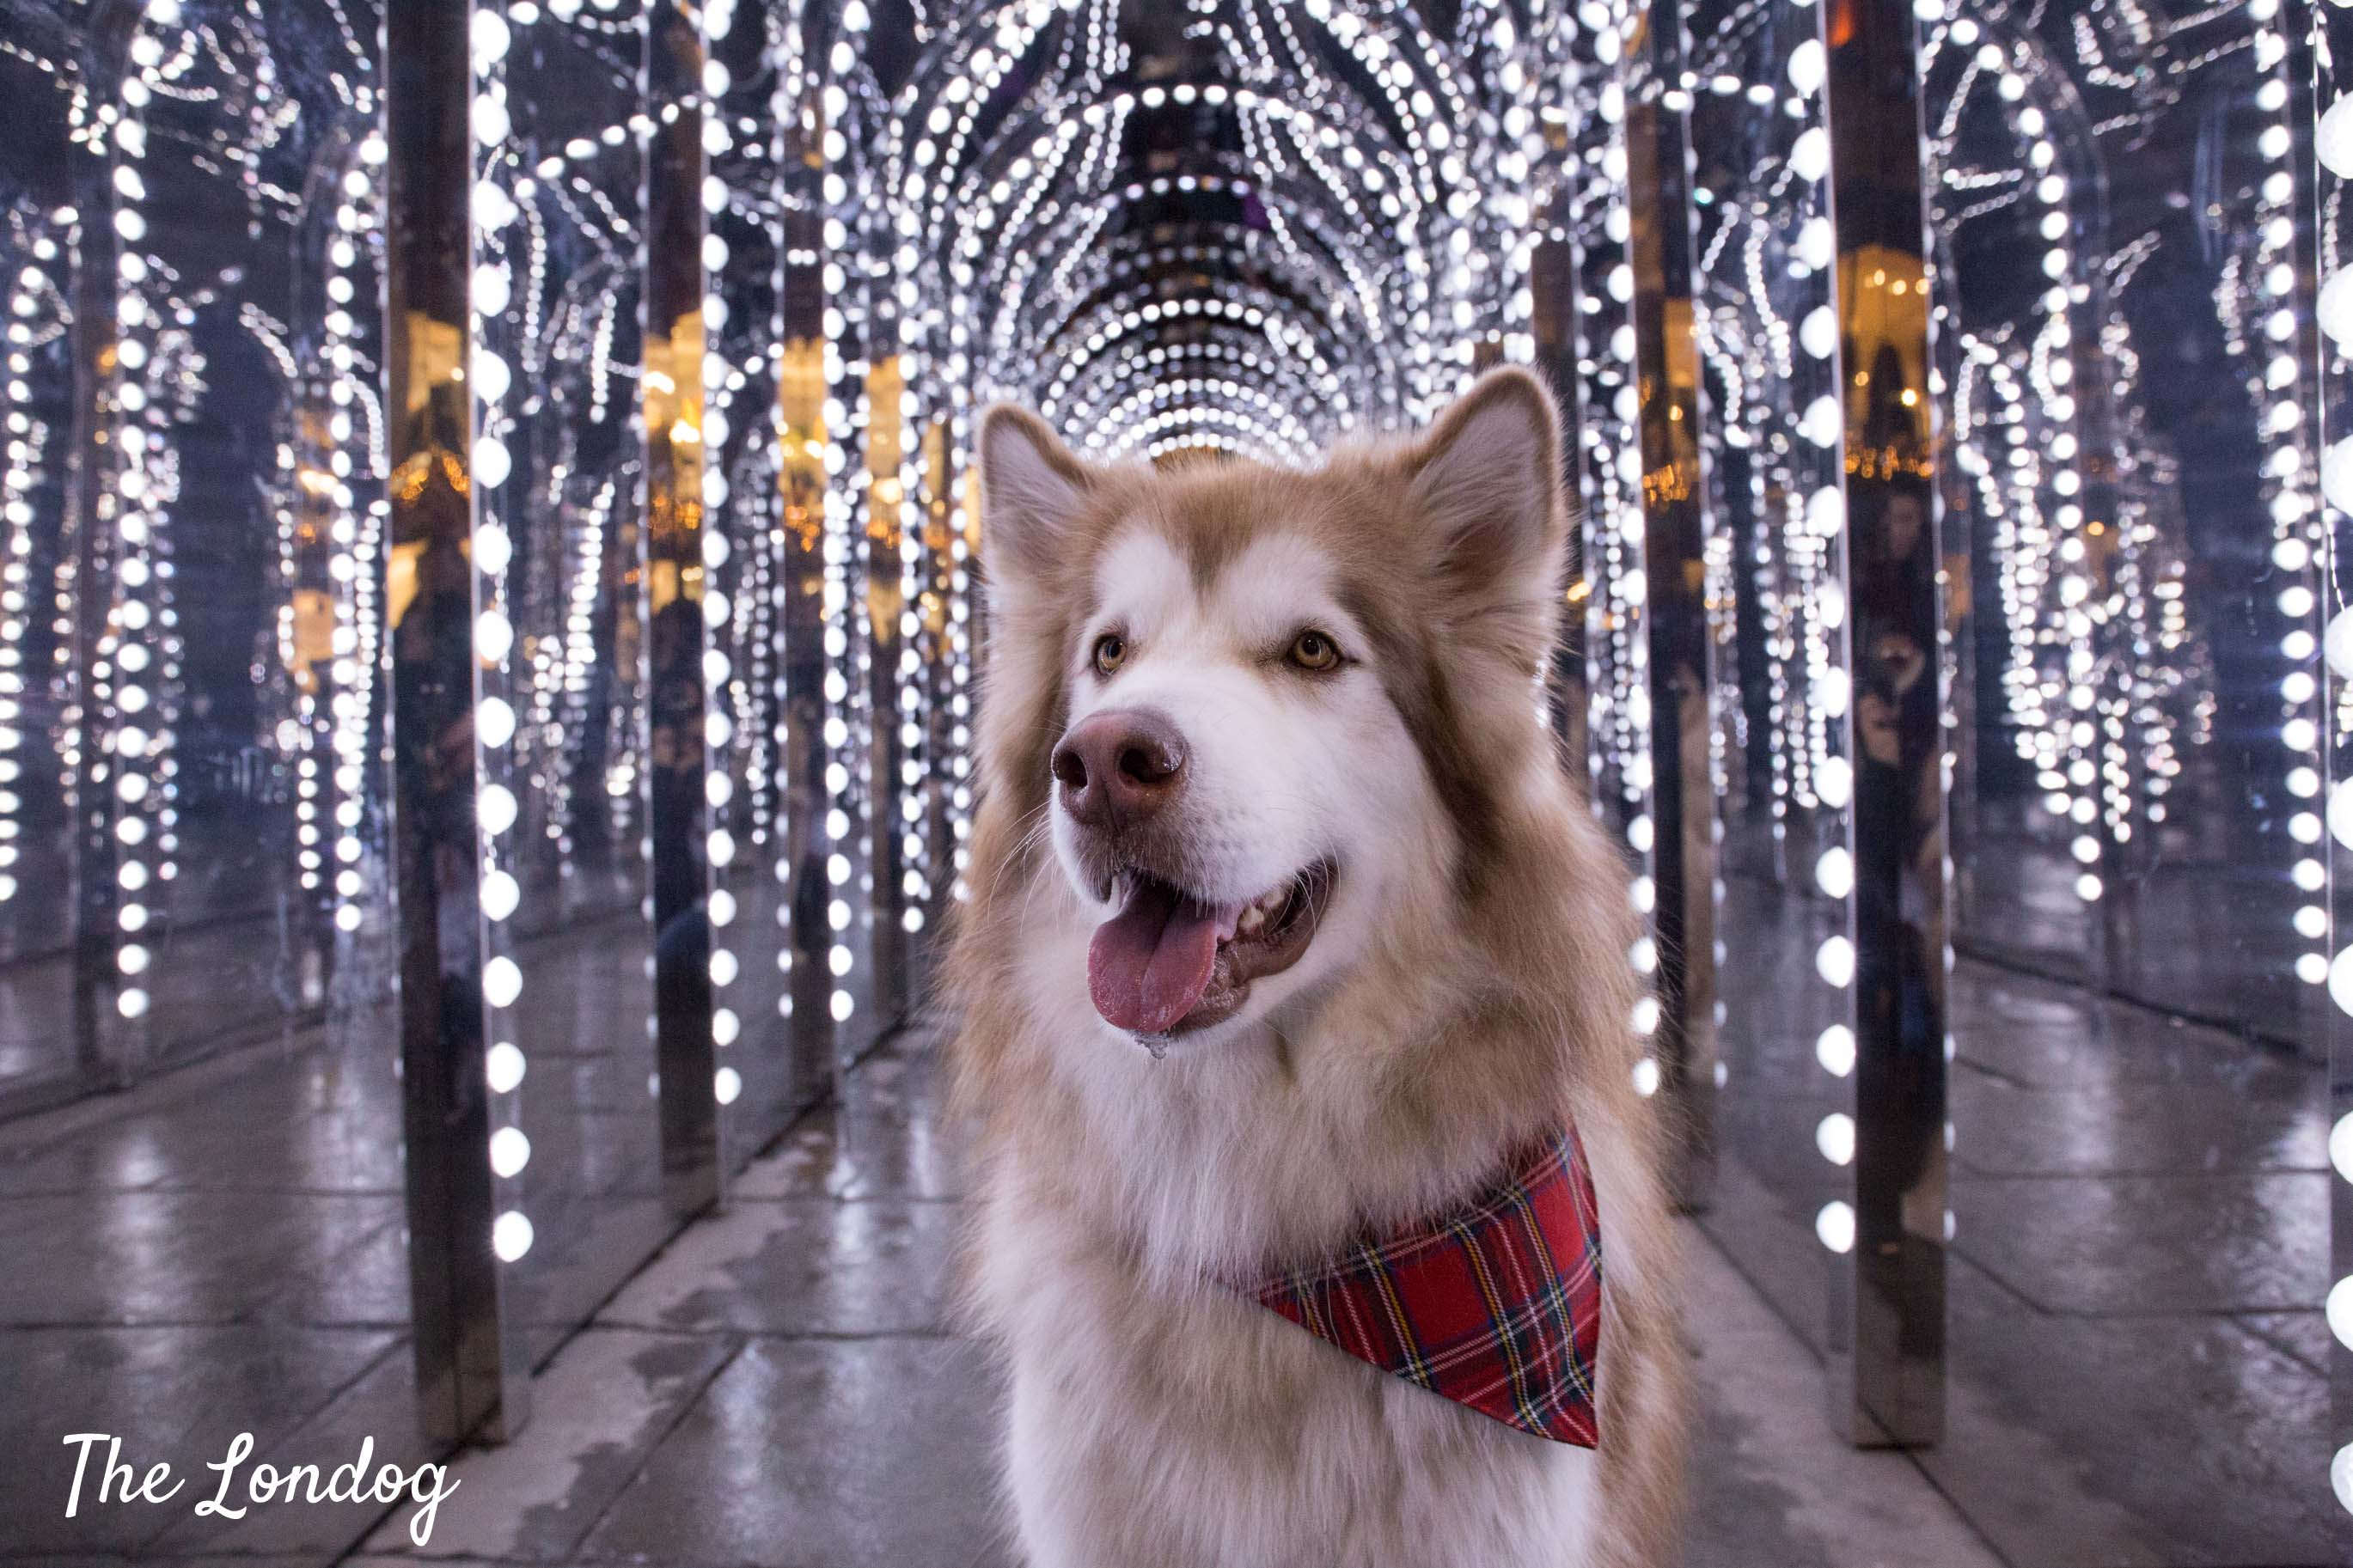 Malamute dog with Christmas lights